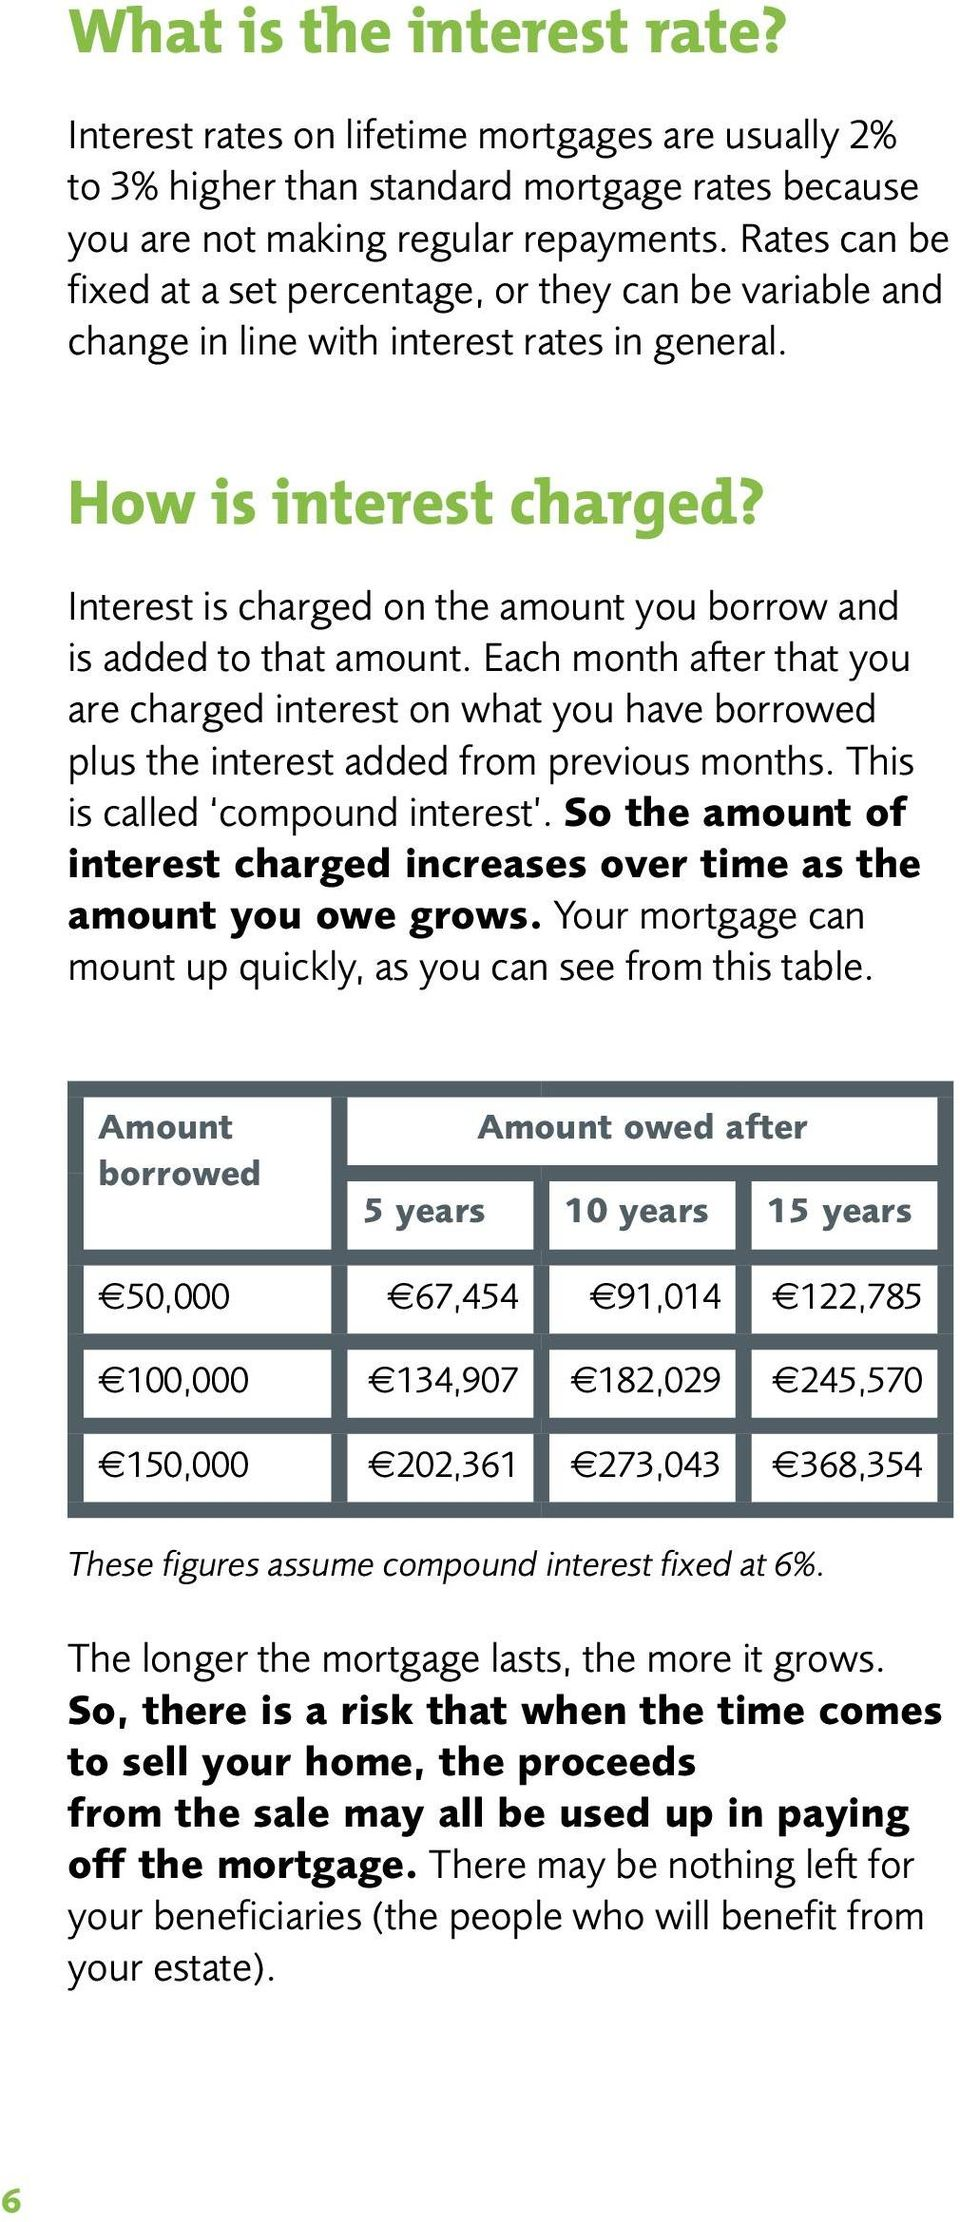 Interest is charged on the amount you borrow and is added to that amount. Each month after that you are charged interest on what you have borrowed plus the interest added from previous months.